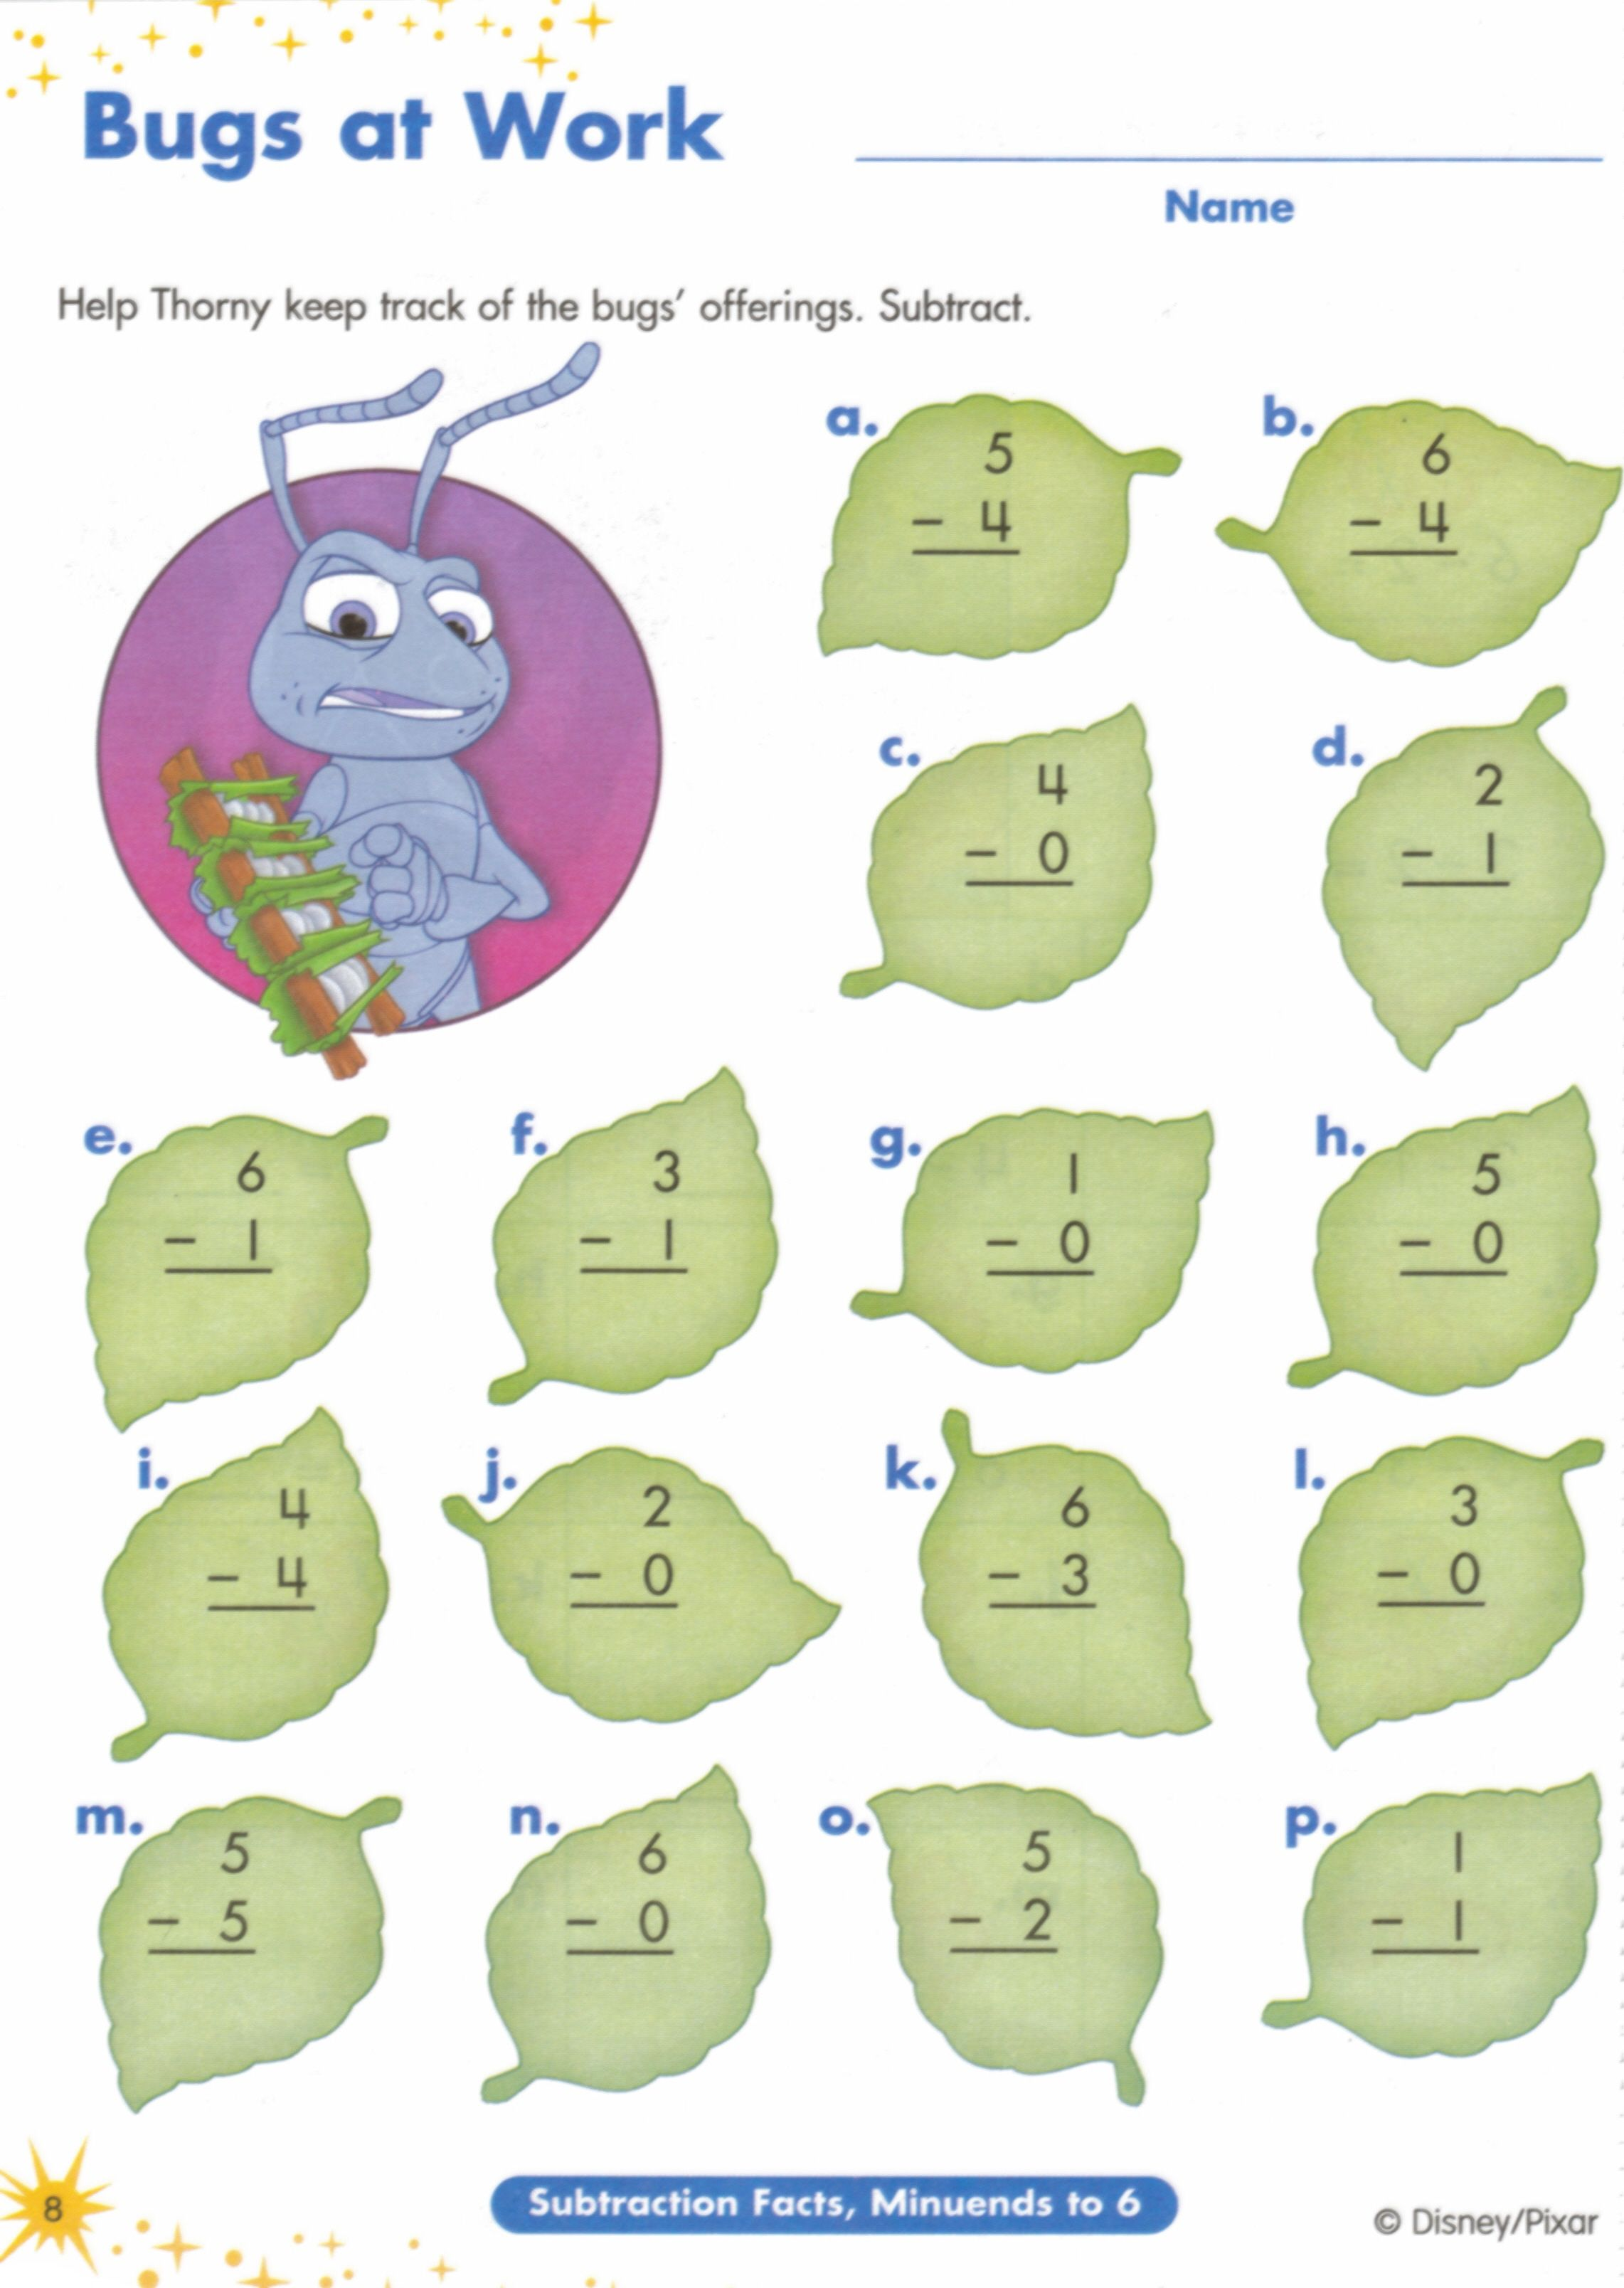 Proatmealus  Nice  Images About Worksheets On Pinterest  Fun Facts For Kids  With Luxury  Images About Worksheets On Pinterest  Fun Facts For Kids Earth Day Worksheets And Jungles With Amazing Make Your Own Worksheets Also Ratio Tables Worksheets In Addition Heart Worksheet And Prek Worksheets Free As Well As The Carbon Cycle Worksheet Answers Additionally Inverse Trig Functions Worksheet From Pinterestcom With Proatmealus  Luxury  Images About Worksheets On Pinterest  Fun Facts For Kids  With Amazing  Images About Worksheets On Pinterest  Fun Facts For Kids Earth Day Worksheets And Jungles And Nice Make Your Own Worksheets Also Ratio Tables Worksheets In Addition Heart Worksheet From Pinterestcom